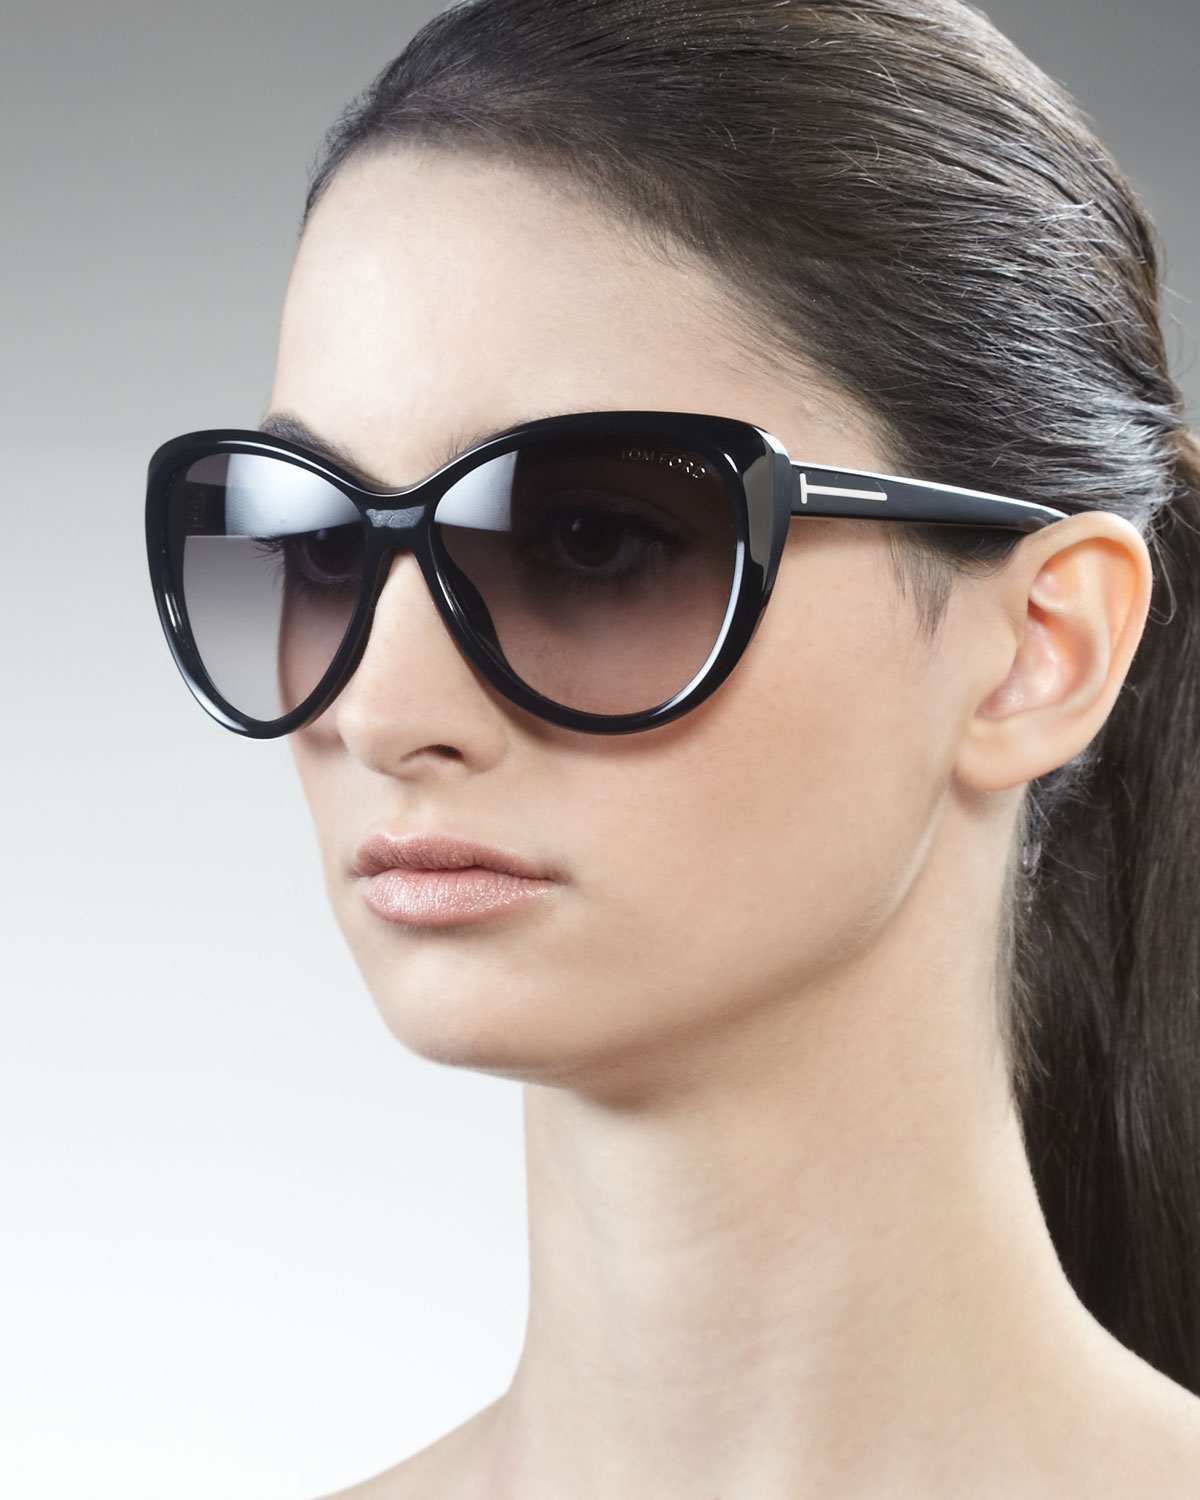 Cat-eye Acetate Sunglasses - Black Tom Ford NOxA070aSG